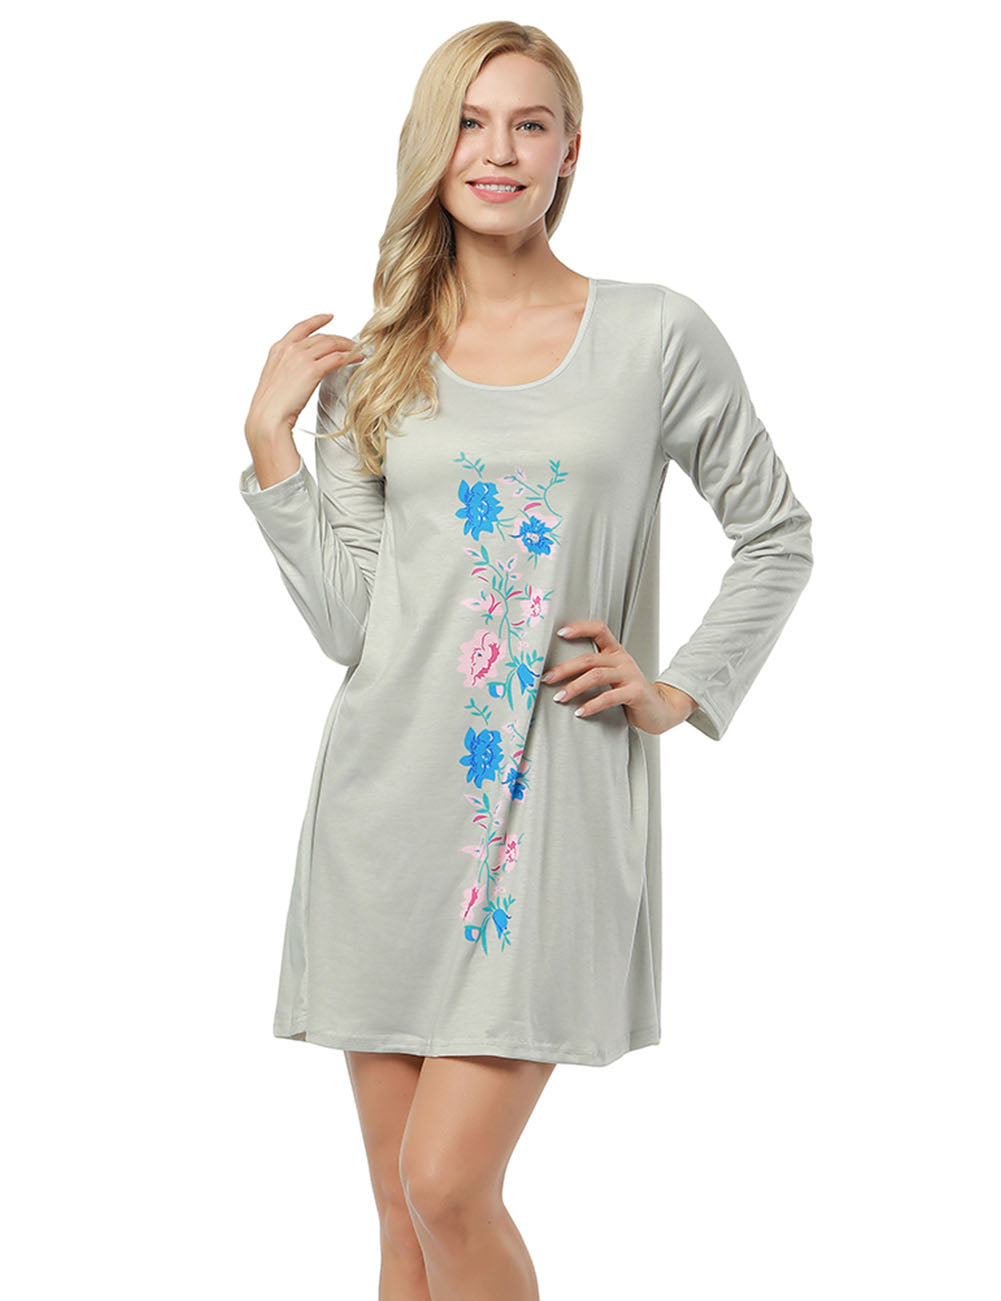 Flattering Floral Printed Ruffle Hem Dress Full Sleeve Female Charm